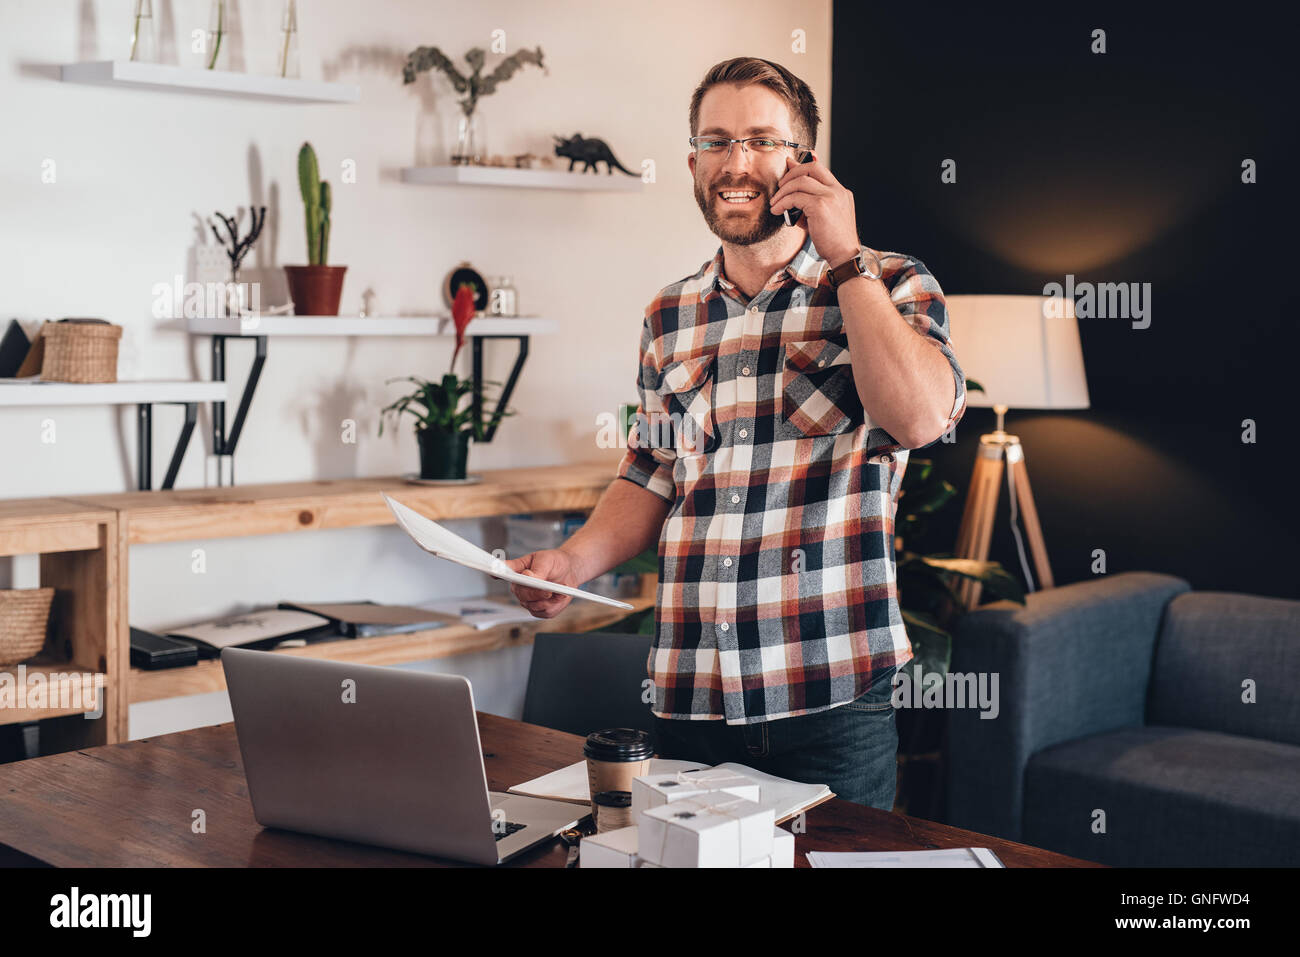 Let's get these orders to customers - Stock Image